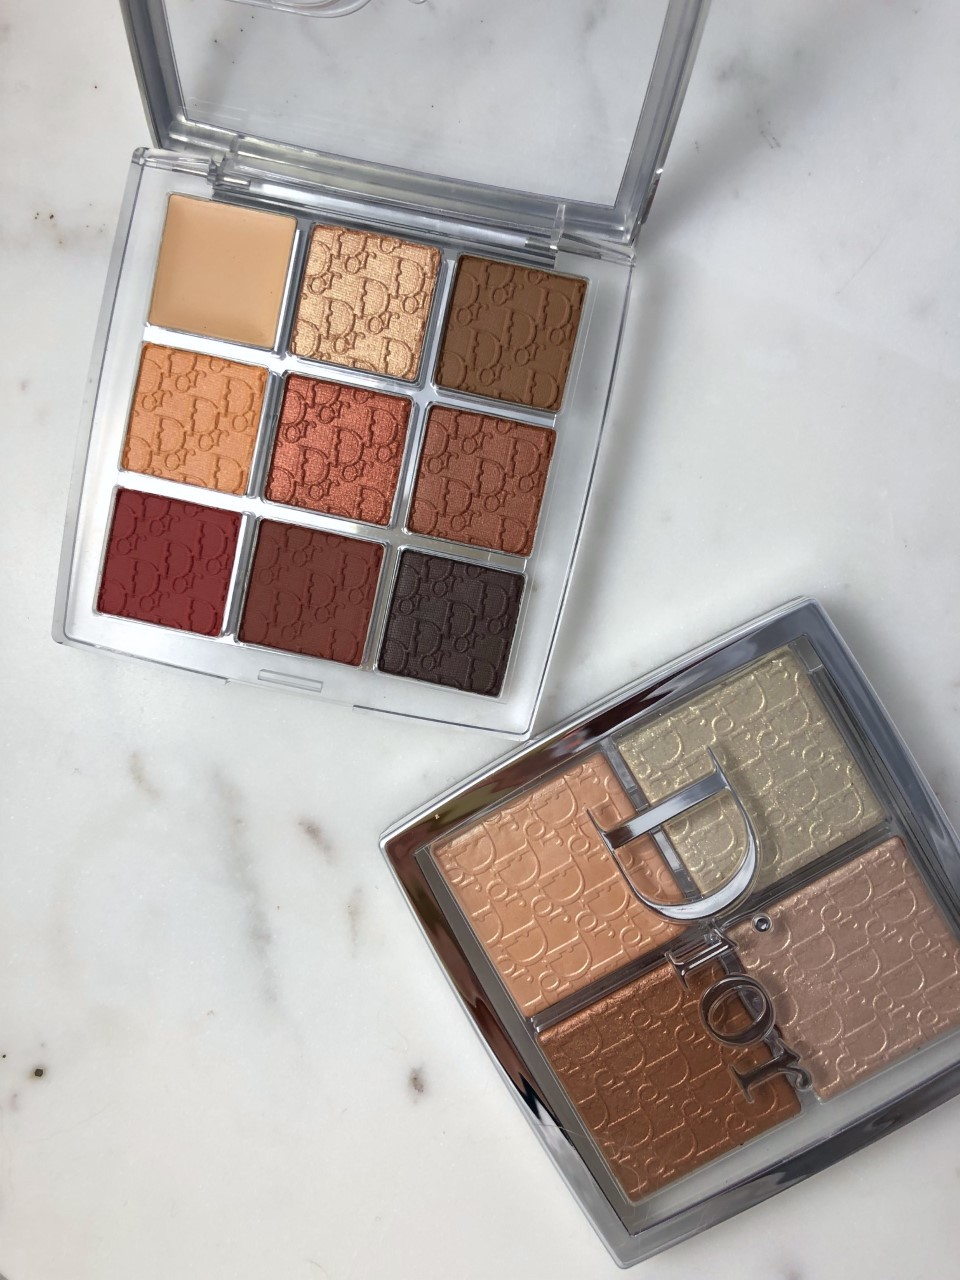 Dior Backstage Eyeshadow and Backstage Glow Face Palette: A quick review